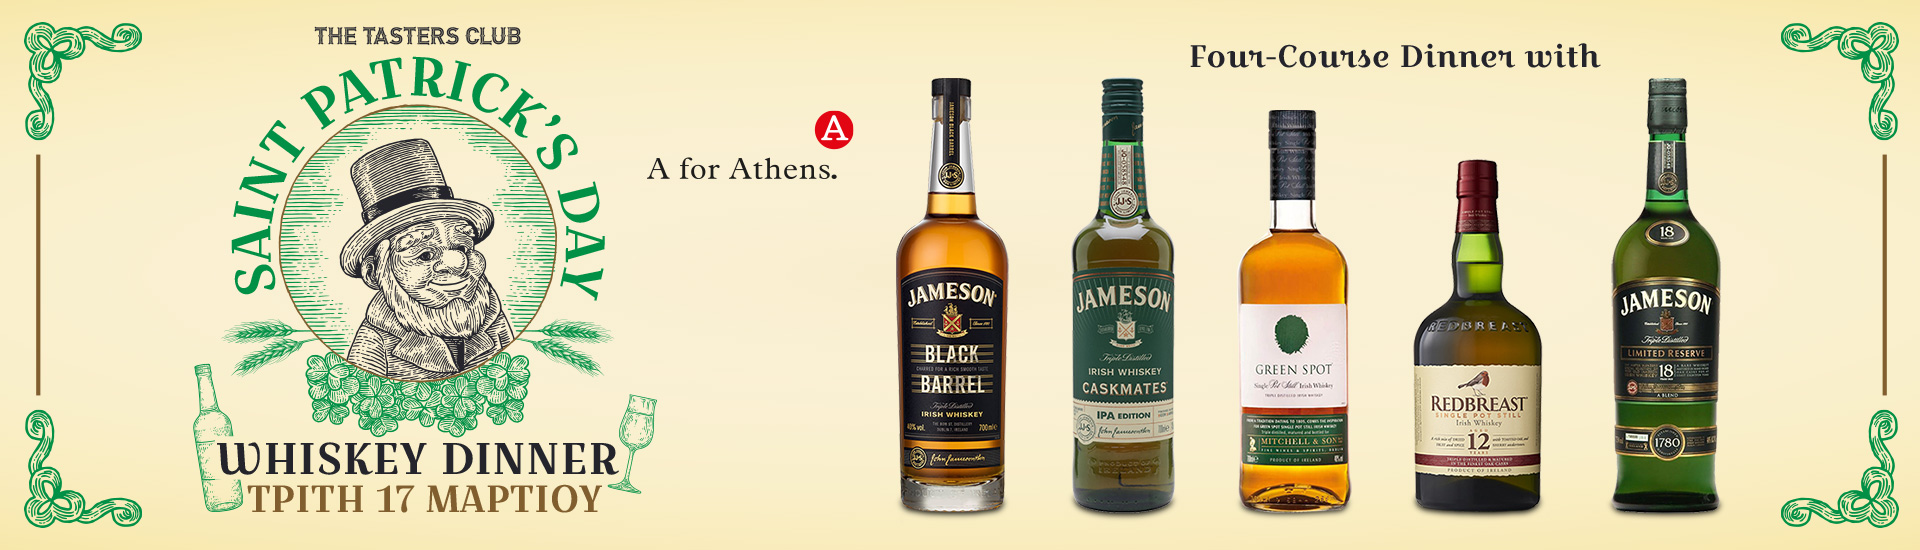 Saint Patrick's whiskey dinner 2020 by The Tasters Club and A for Athens